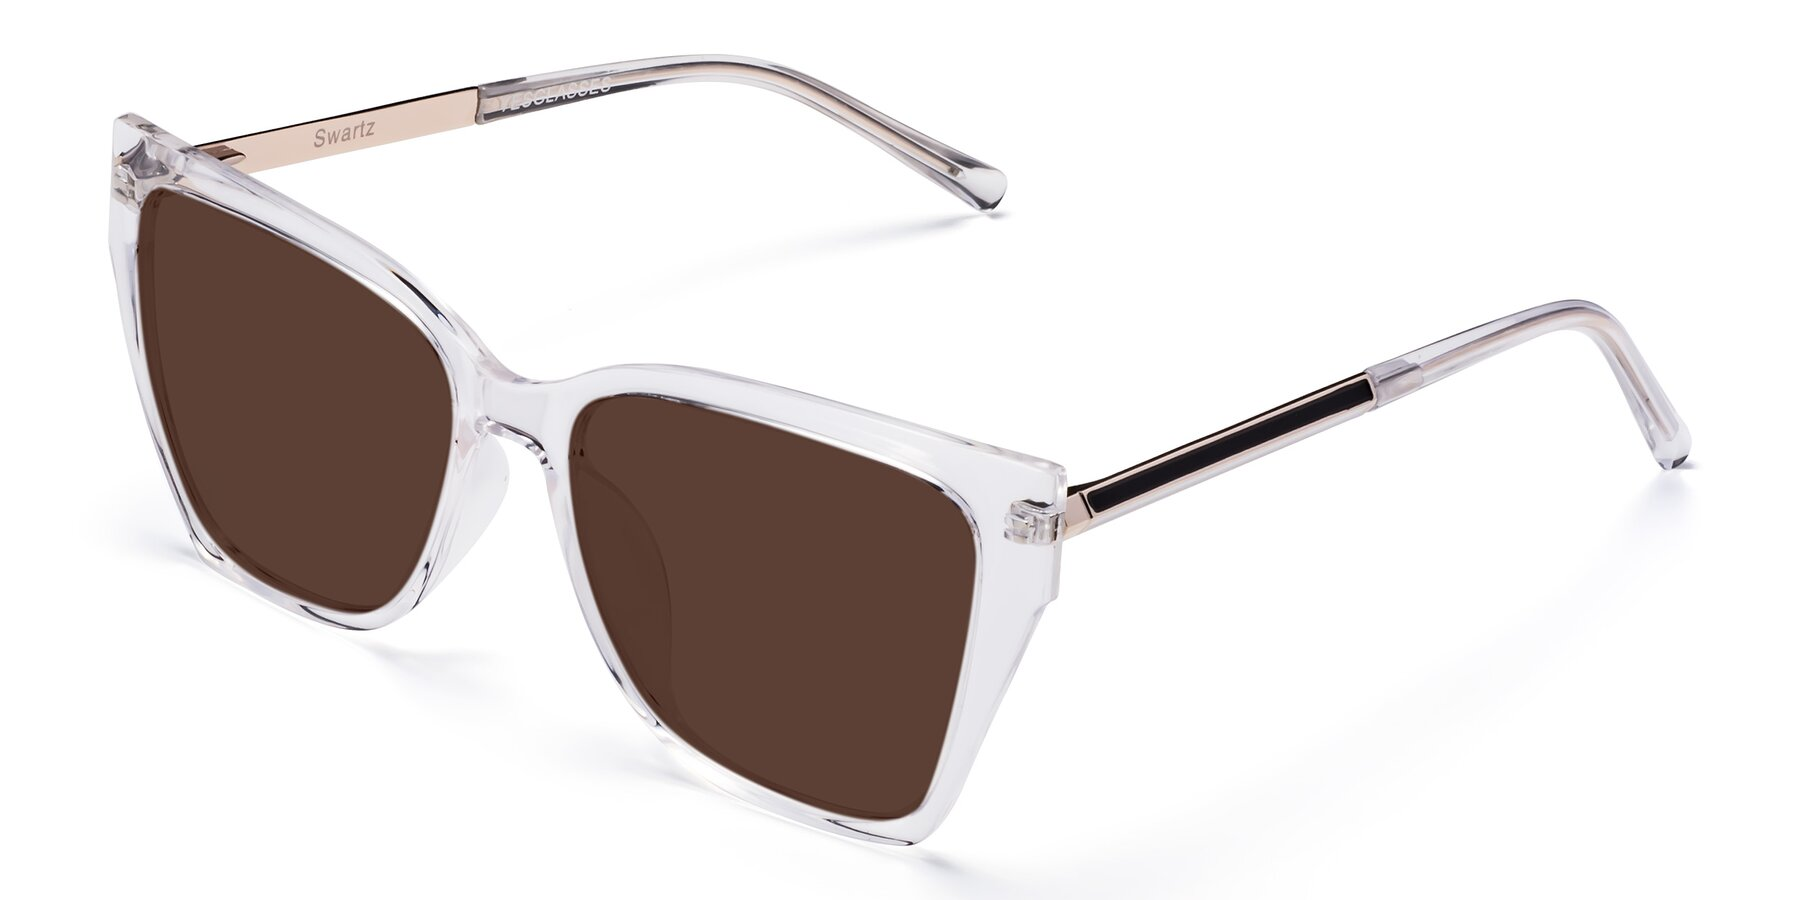 Angle of Swartz in Clear with Brown Tinted Lenses